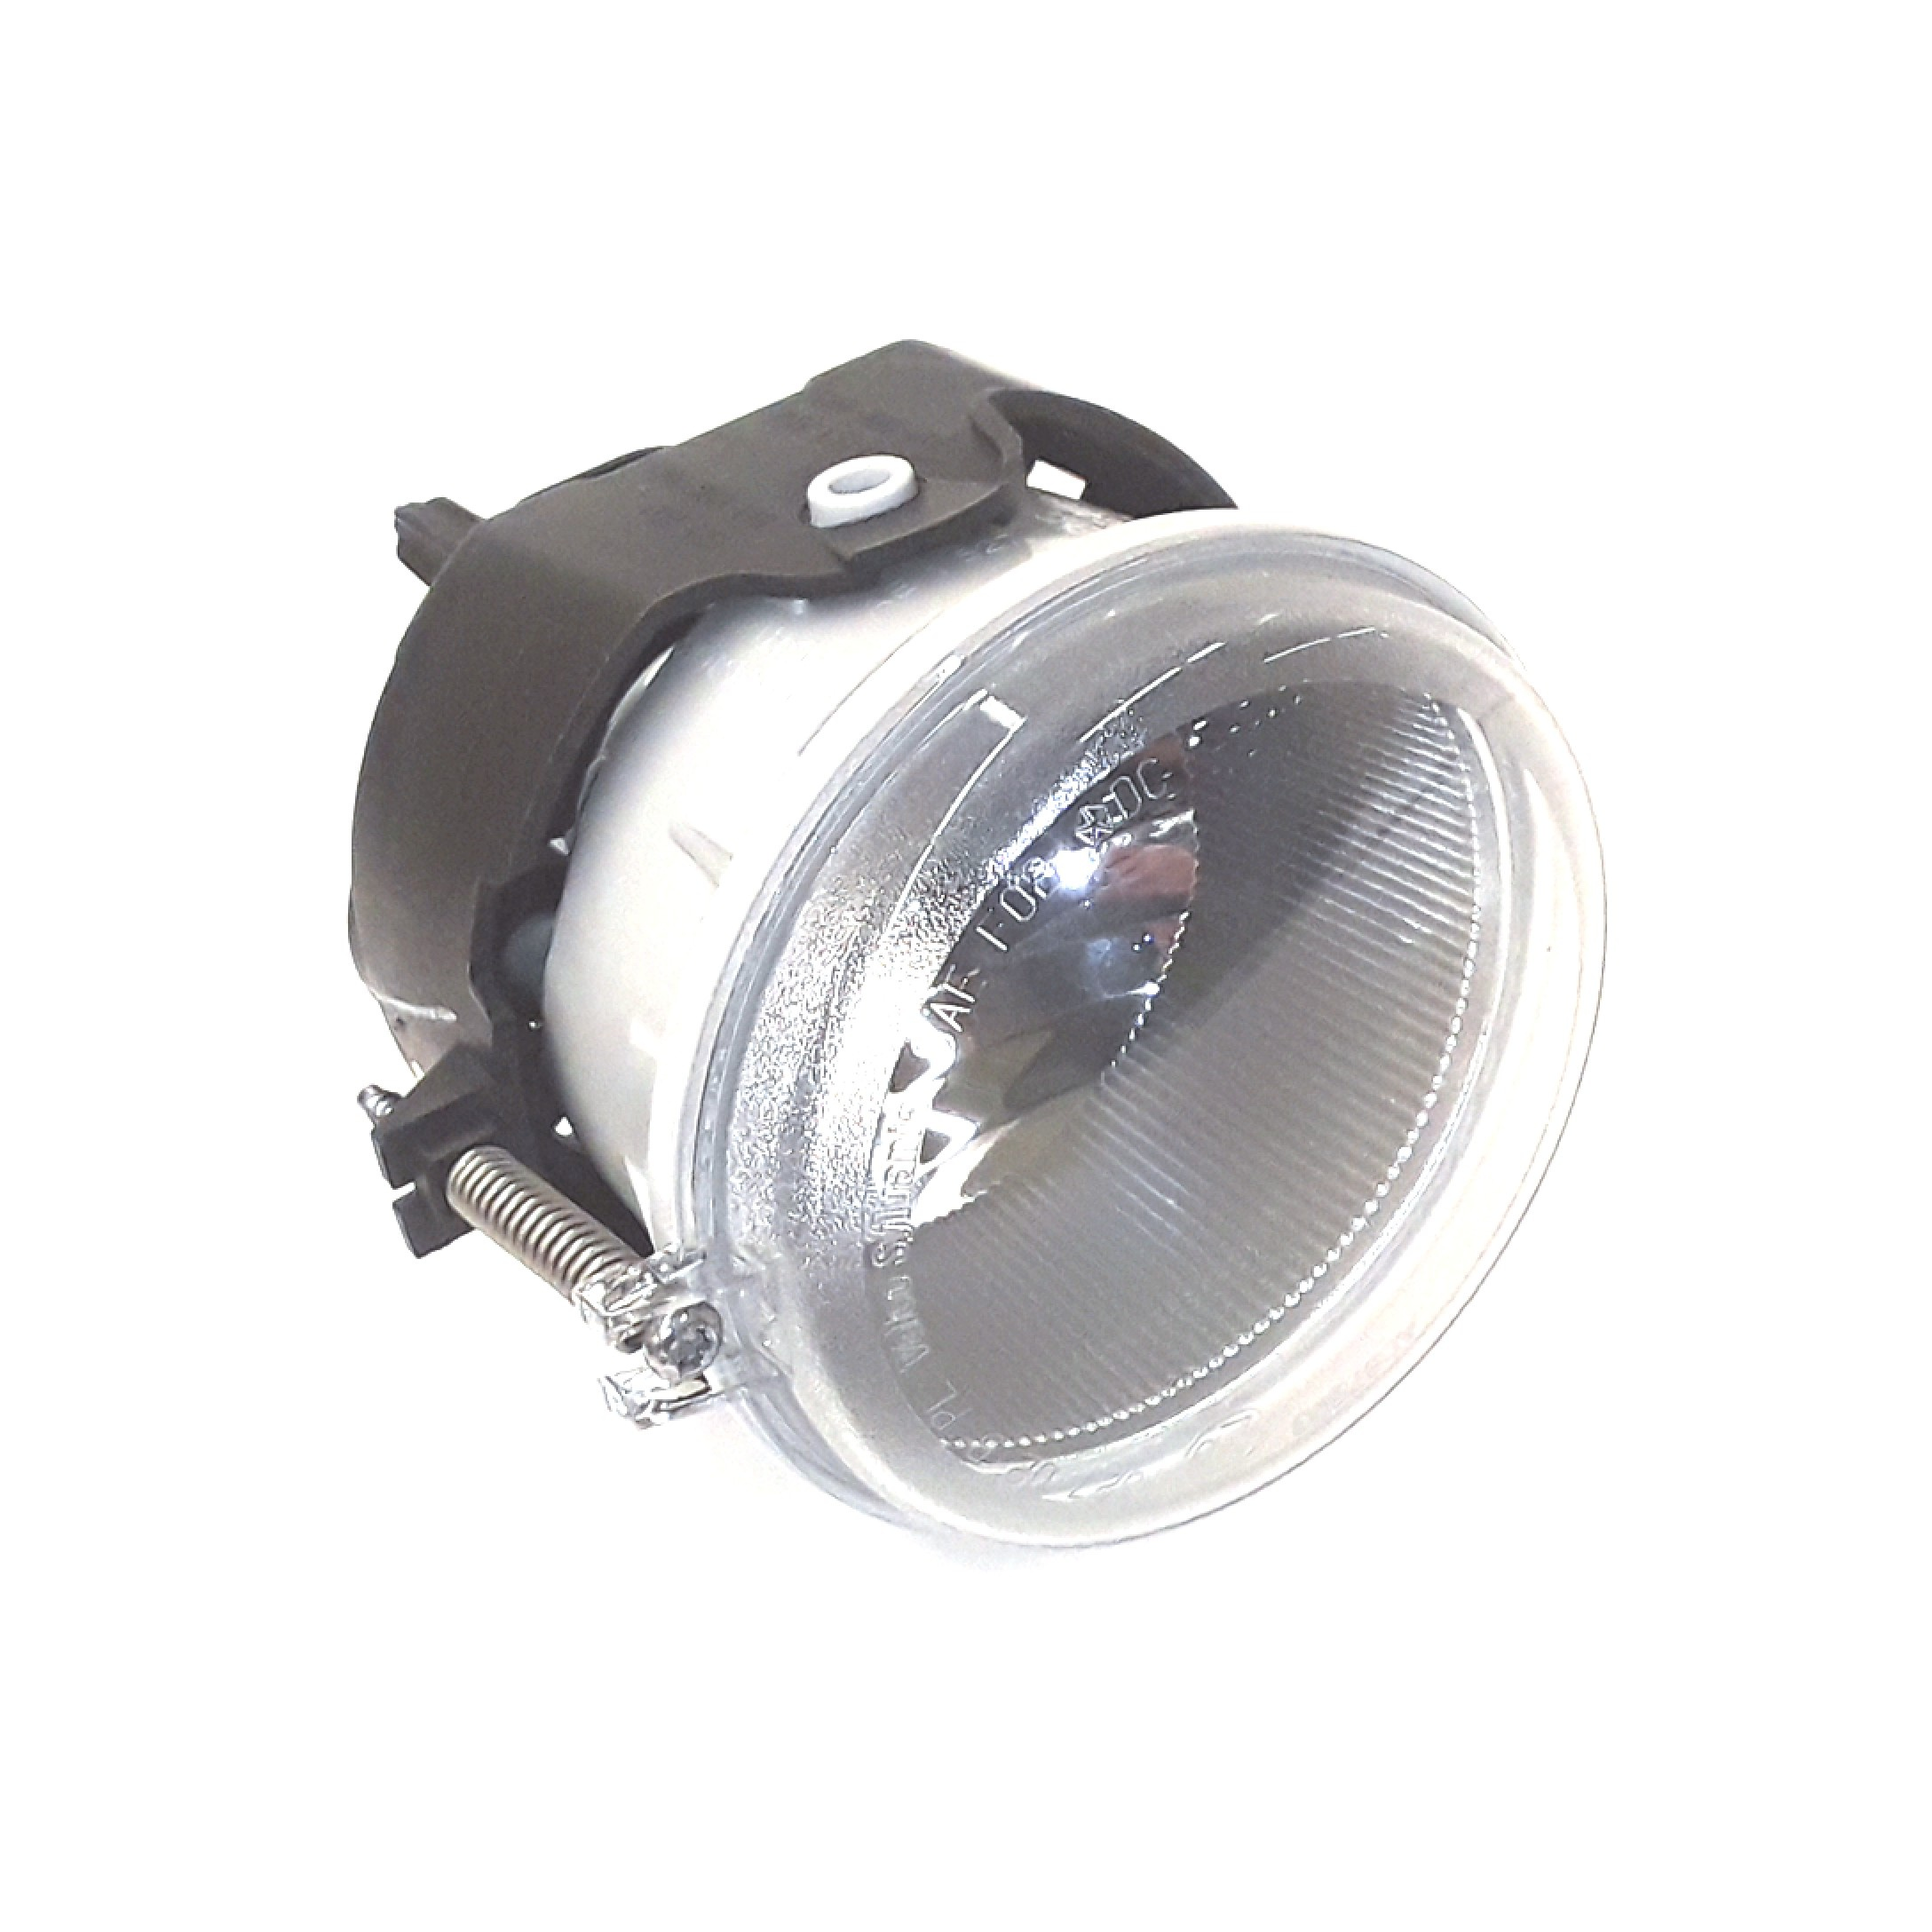 7B0941699 - Fog lamp assembly. Routan. Front, lamps - Genuine Volkswagen Part